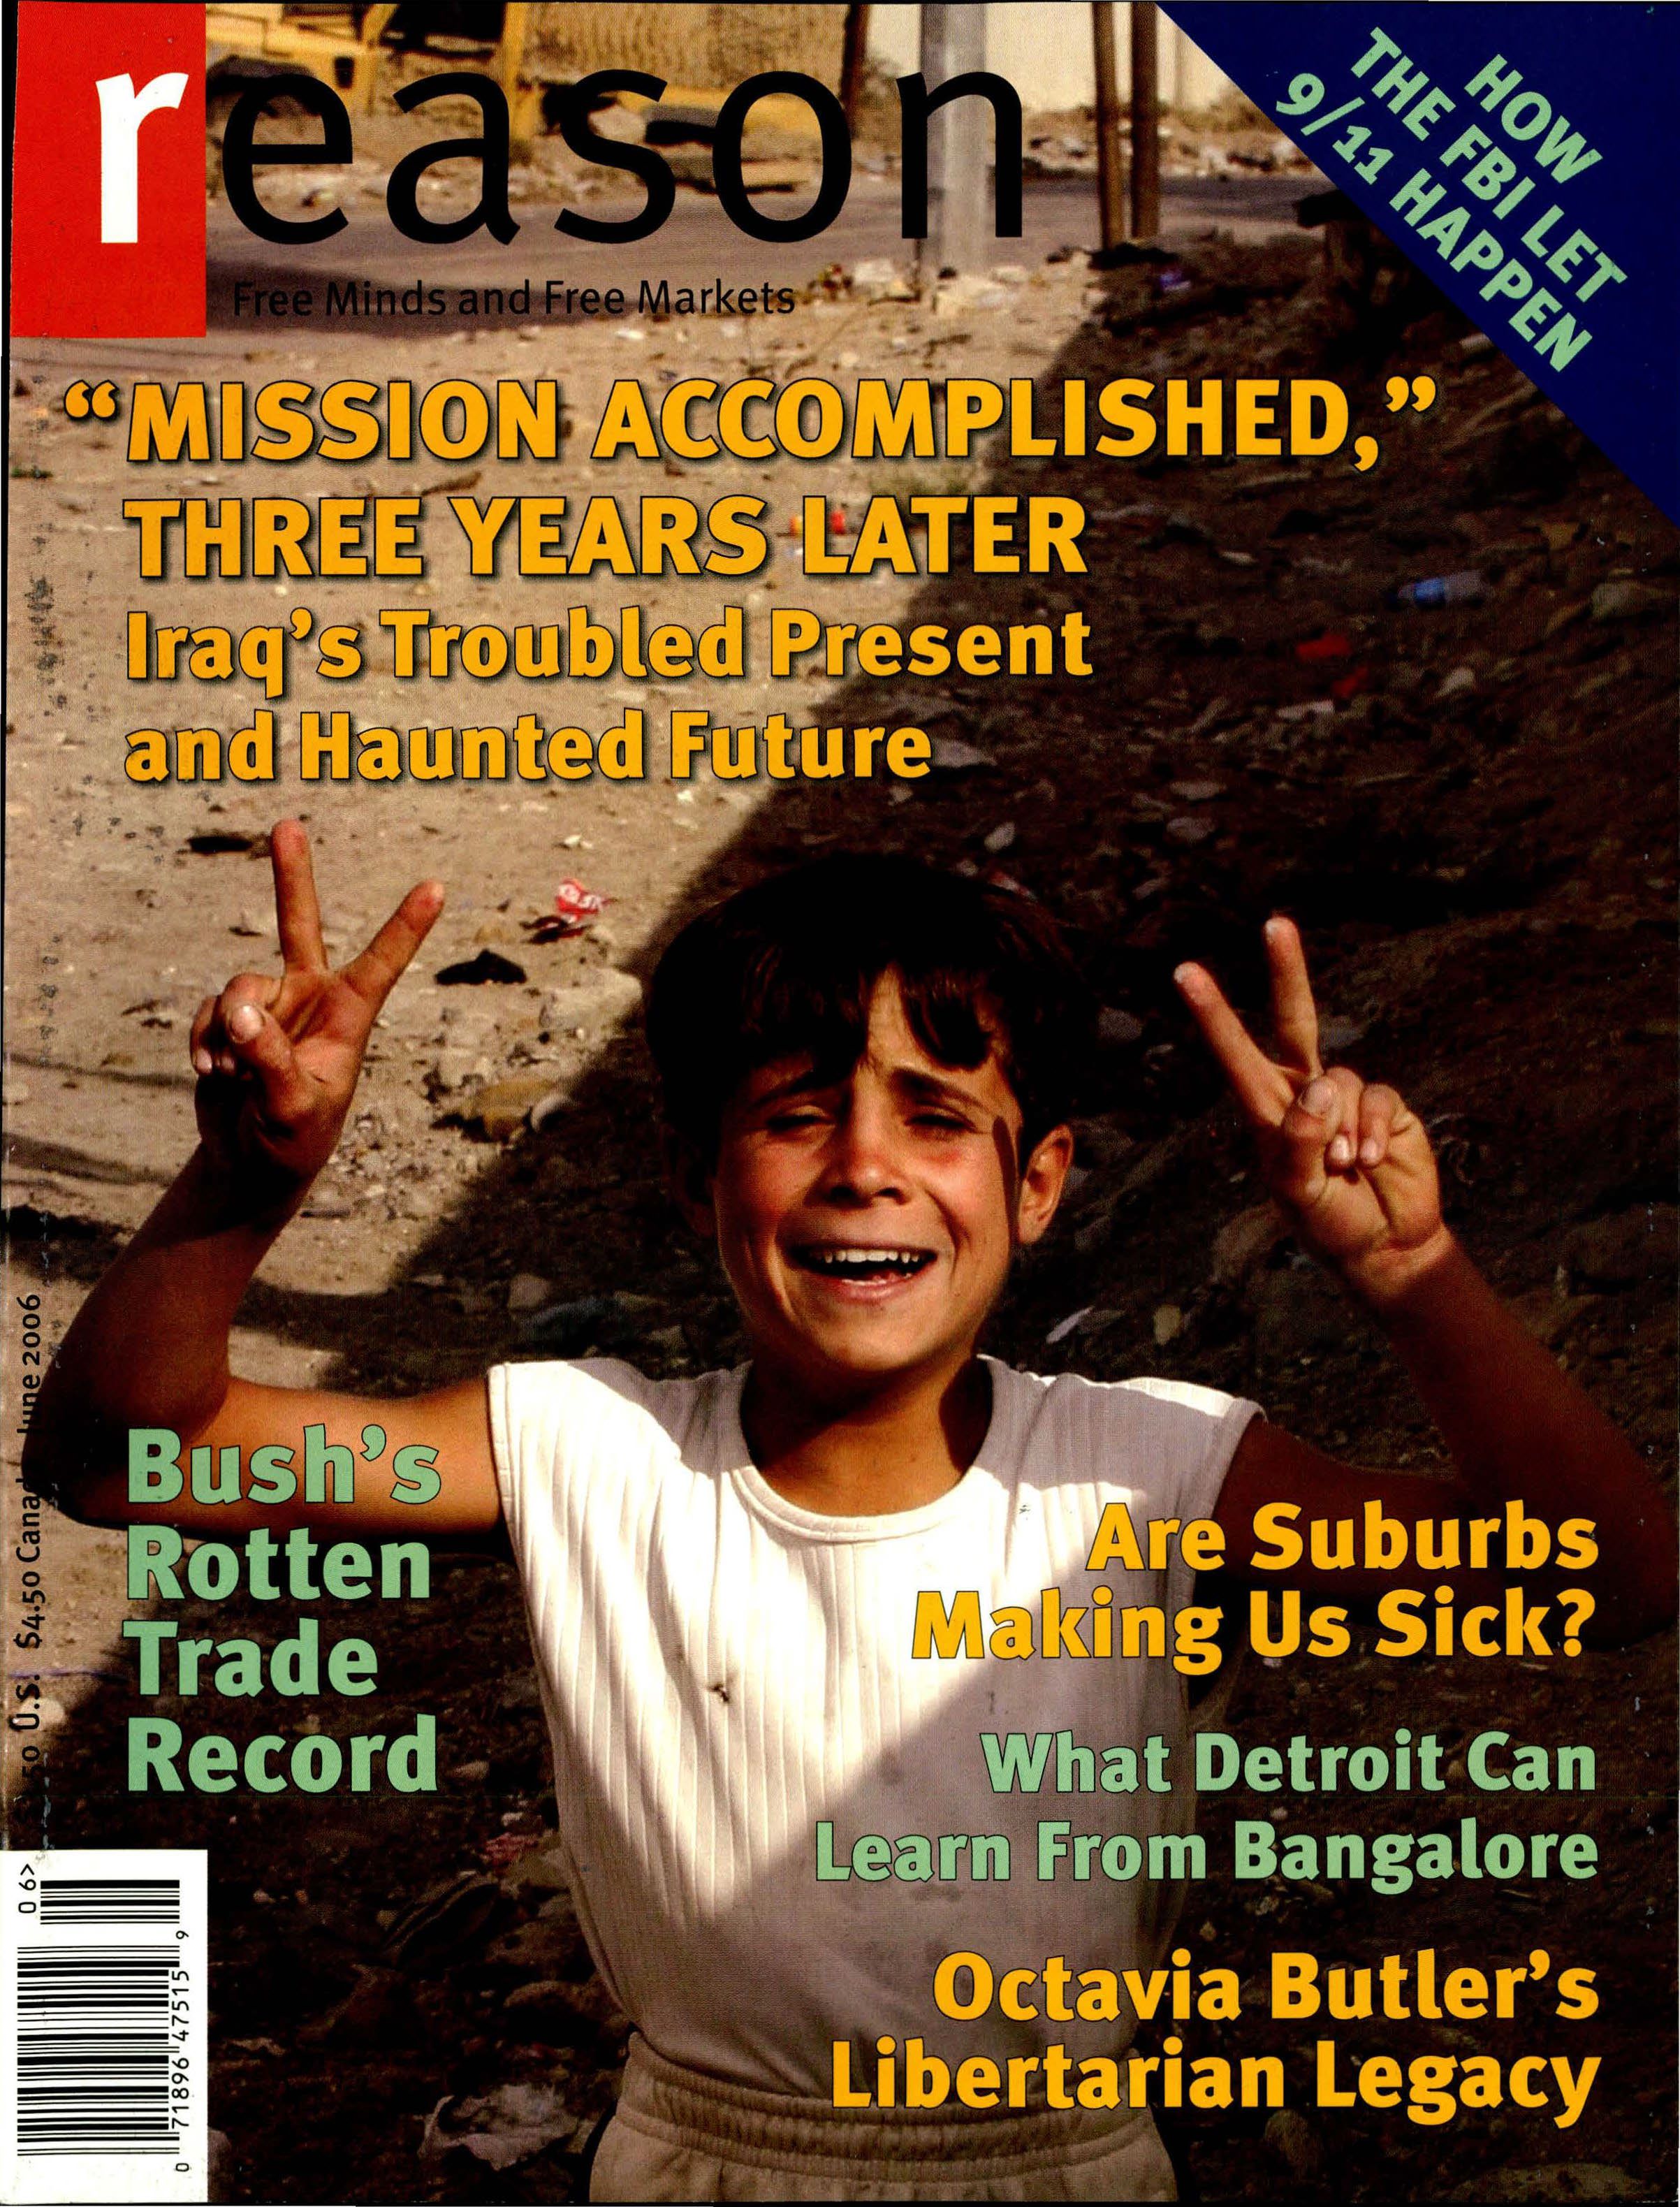 Reason Magazine, June 2006 cover image